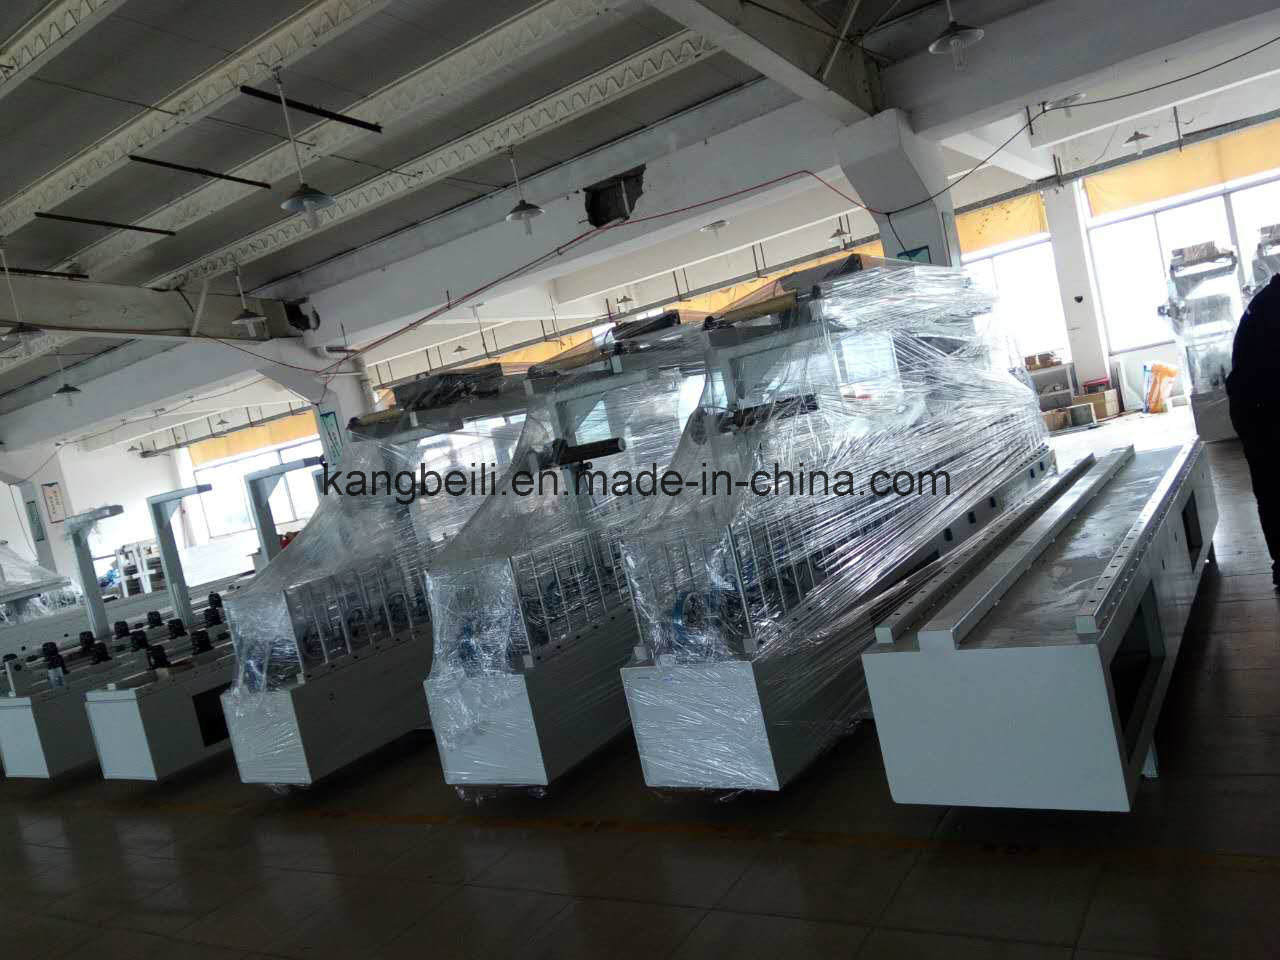 Cold Adhesive Furniture Decorative TUV Certificated Mingde Brand Woodworking Wrapping Machine